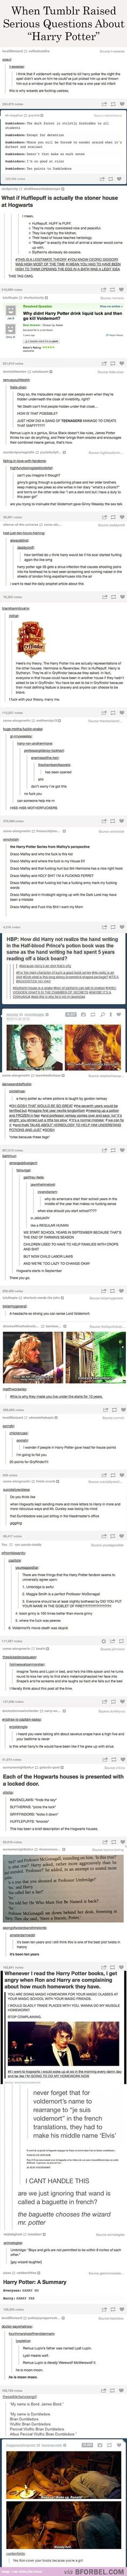 28 Seriously Amazing Harry Potter Questions Raised By Fans Ridiculous Harry Potter, Harry Potter Jokes, Harry Potter Fandom, Hogwarts, Slytherin, Plus Tv, Yer A Wizard Harry, Never Stop Dreaming, Harry Potter Universal